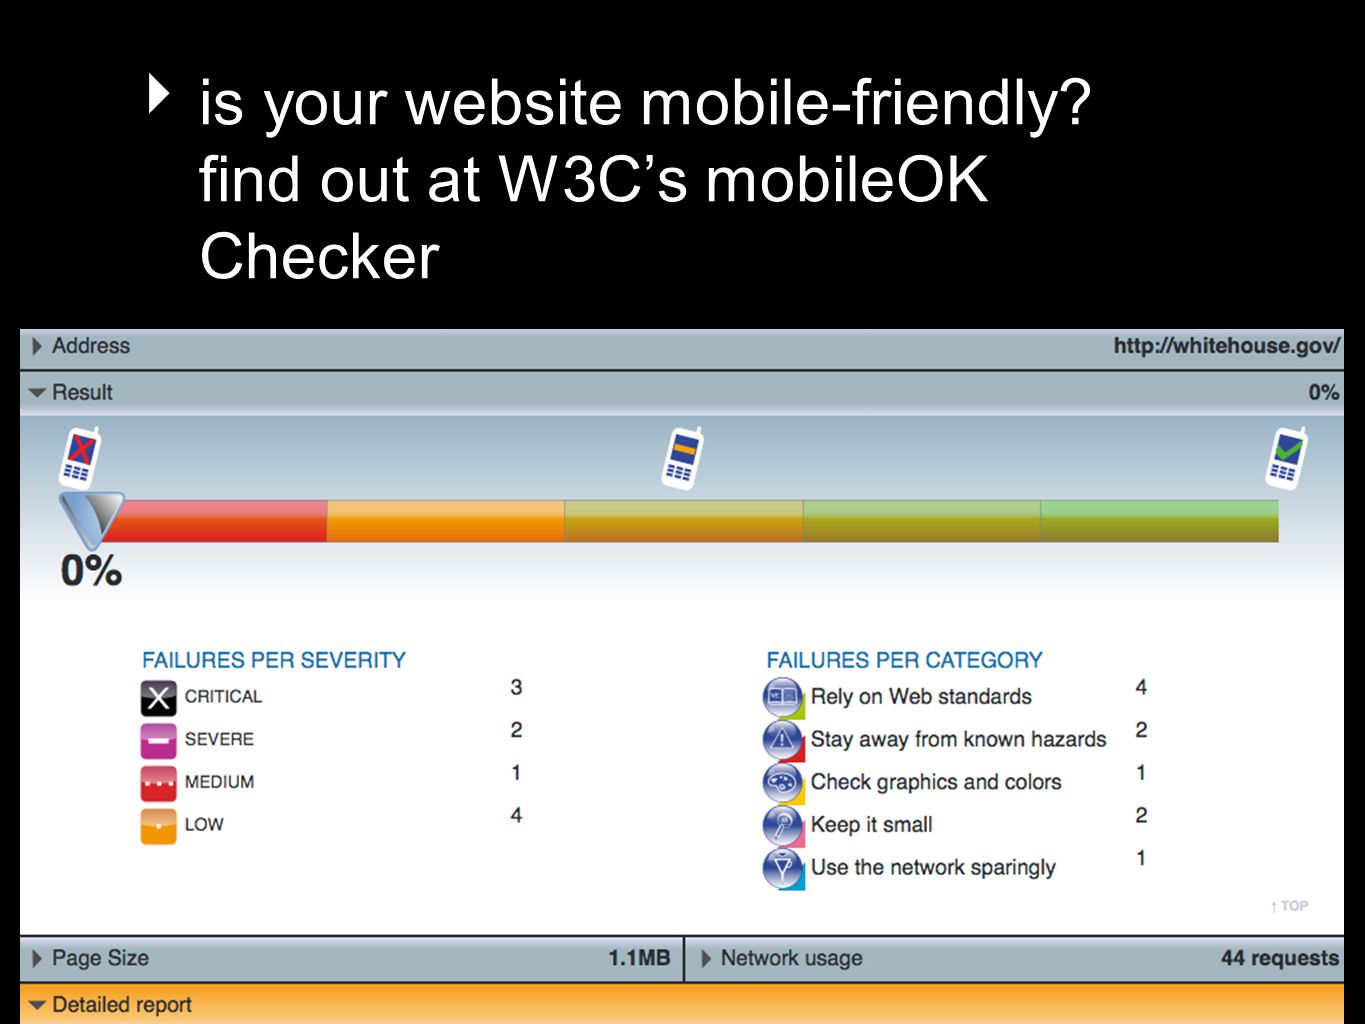 is your website mobile-friendly? find out at W3Cs mobileOK Checker